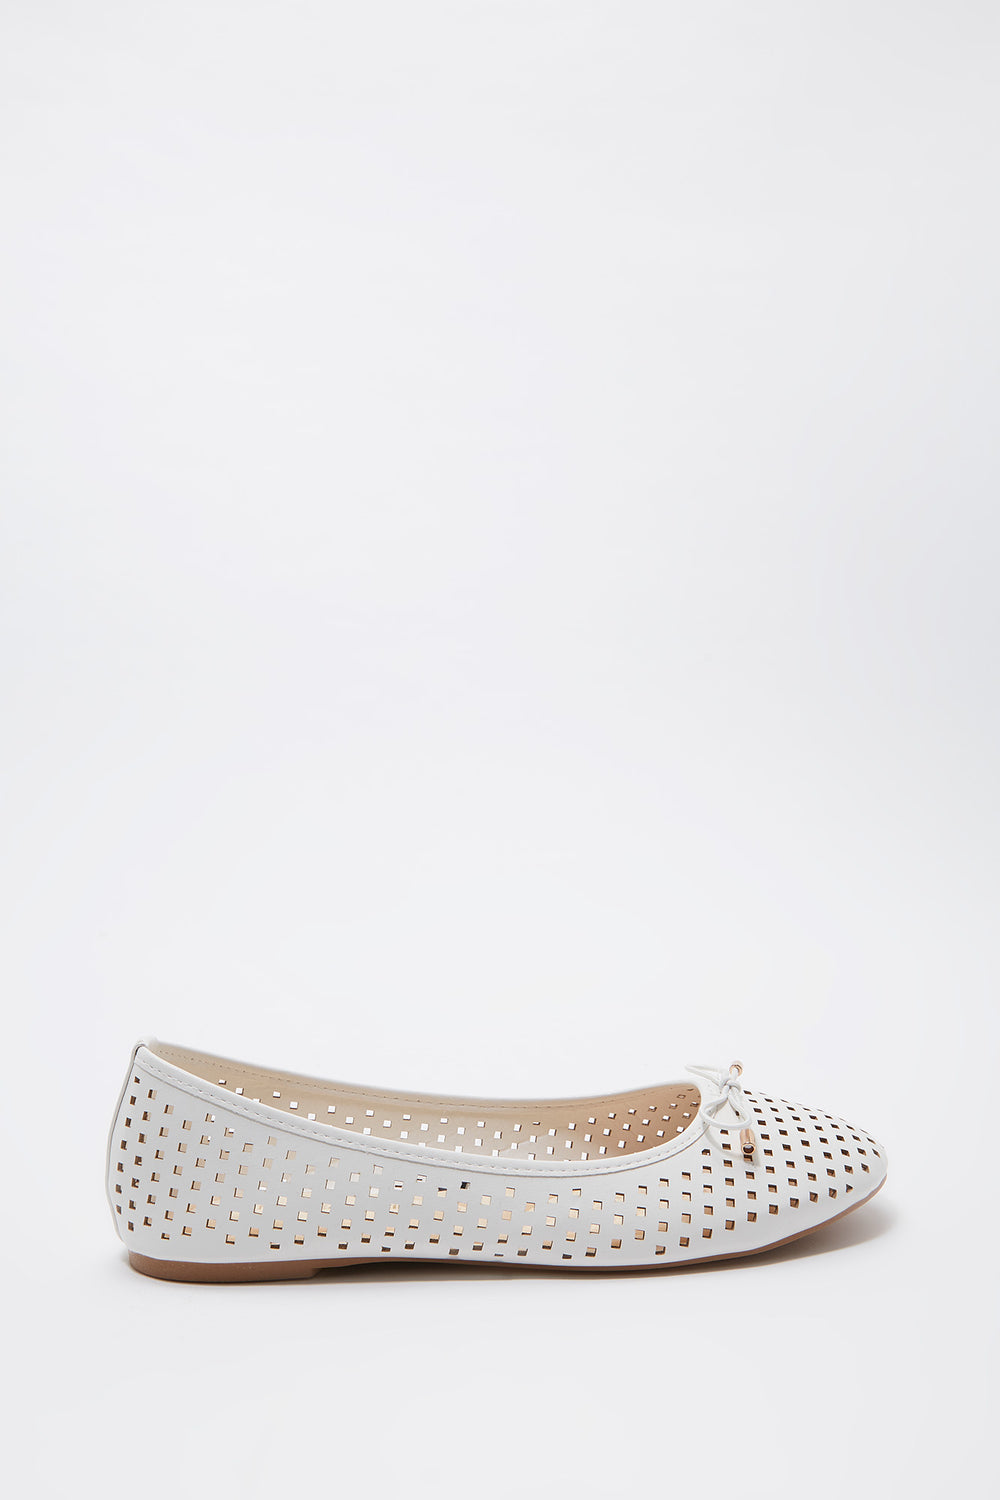 Laser Cut Out Bow Ballet Flat White